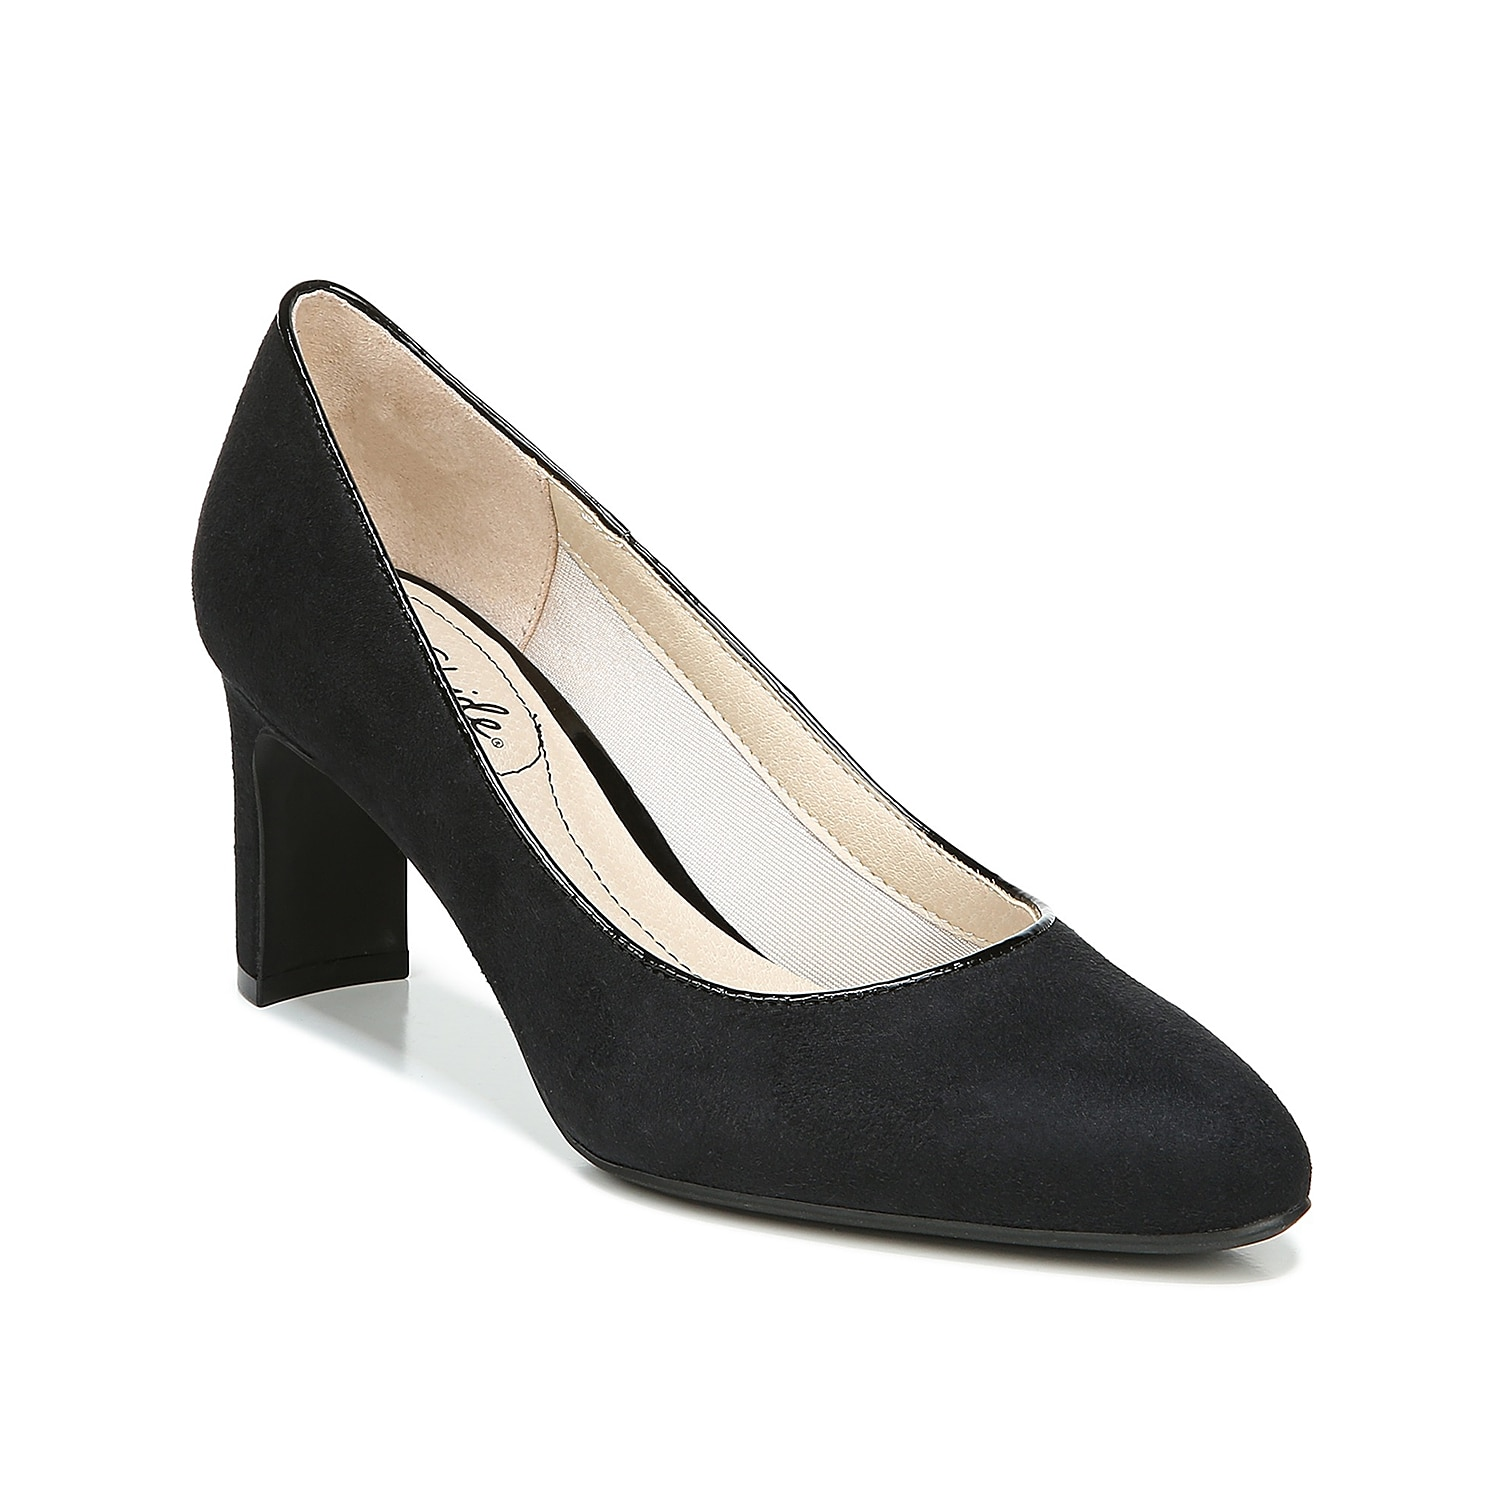 Go from desk to dinner in sophisticated style with the LifeStride Gigi pump. This timeless design is equipped with Soft System® comfort technology that offers superior cushioning and all-day support.